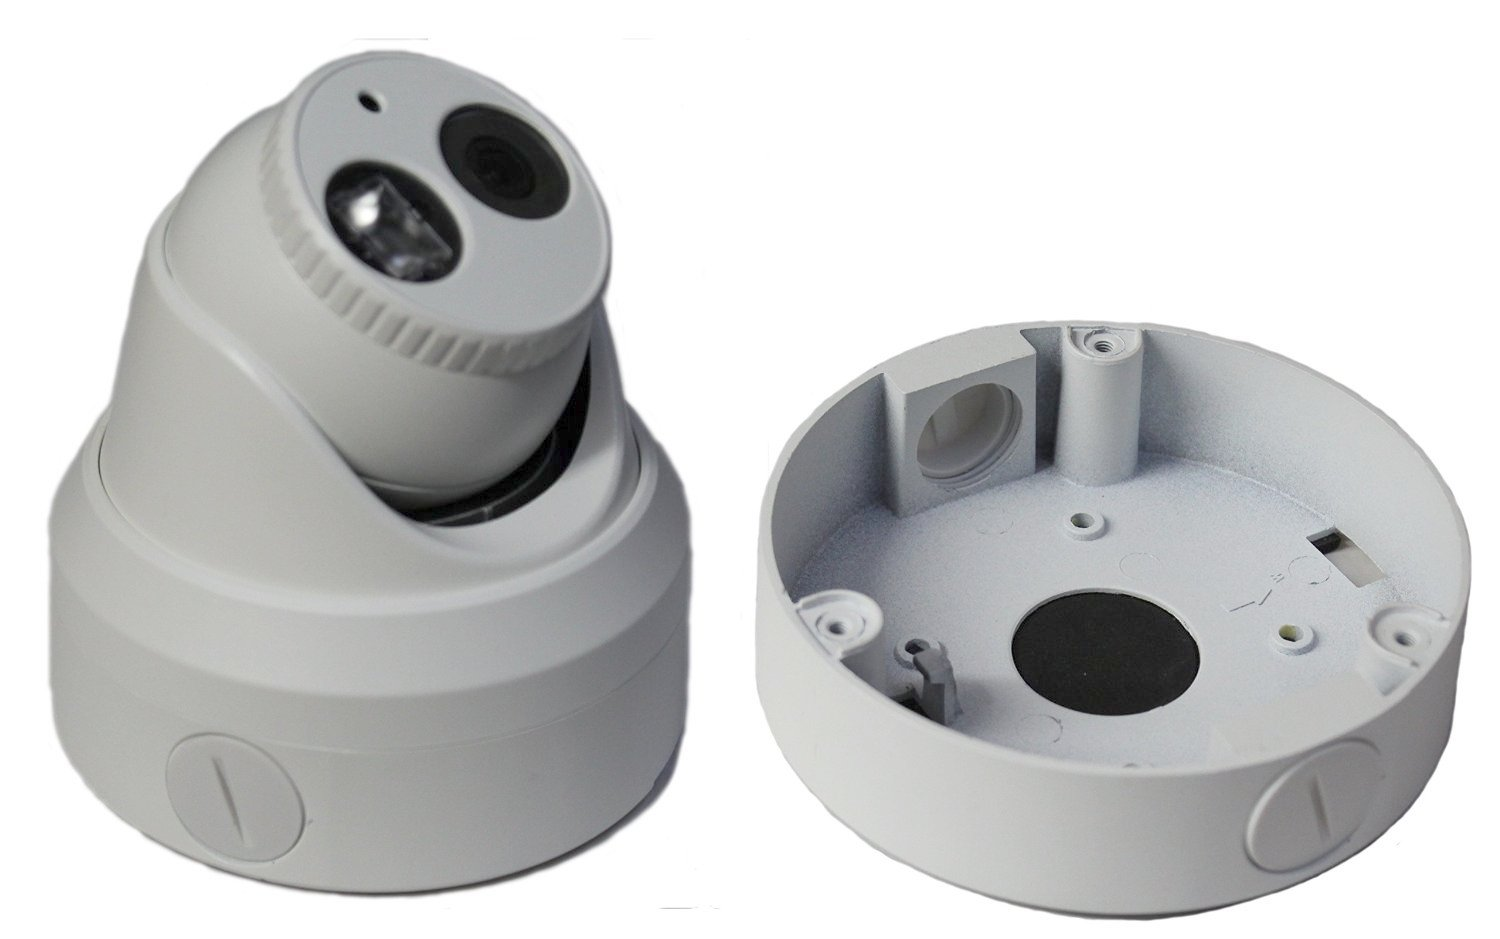 Kenuco White Junction Box/Mounting Base For Hikvision Turret Camera DS-2CD23x2